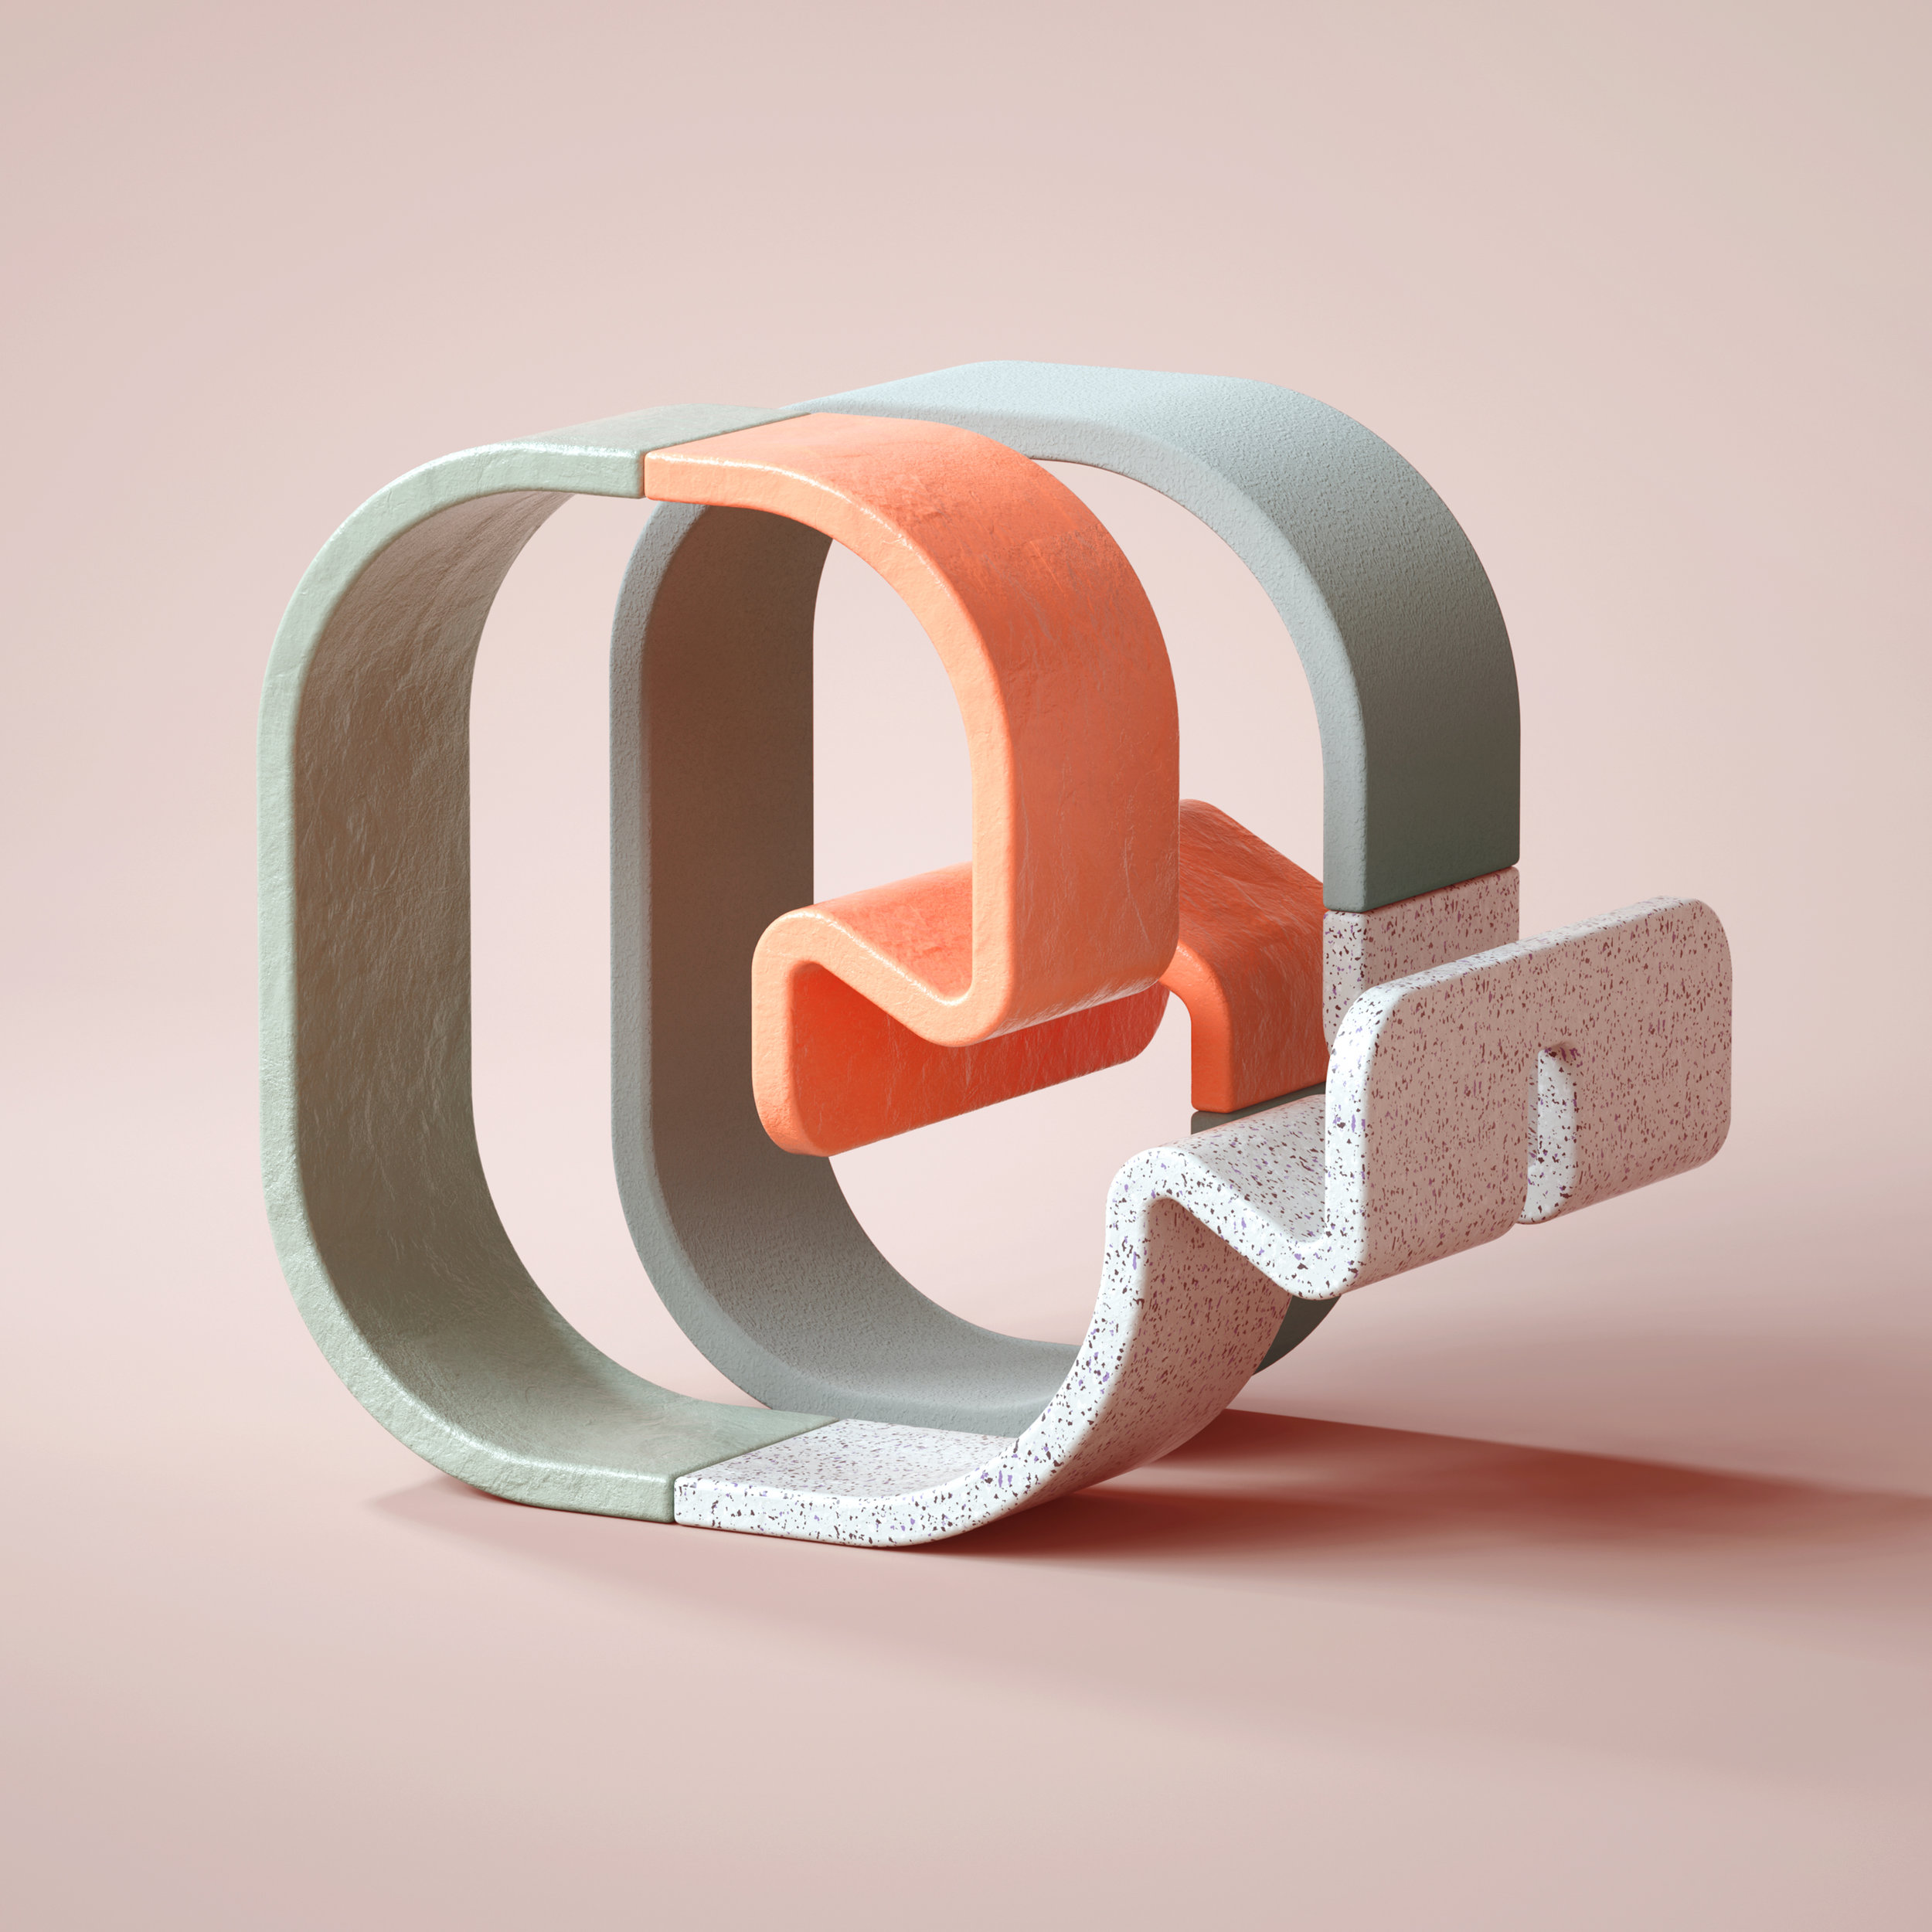 36 Days of Type 2019 - 3D Typeform letter Q visual.